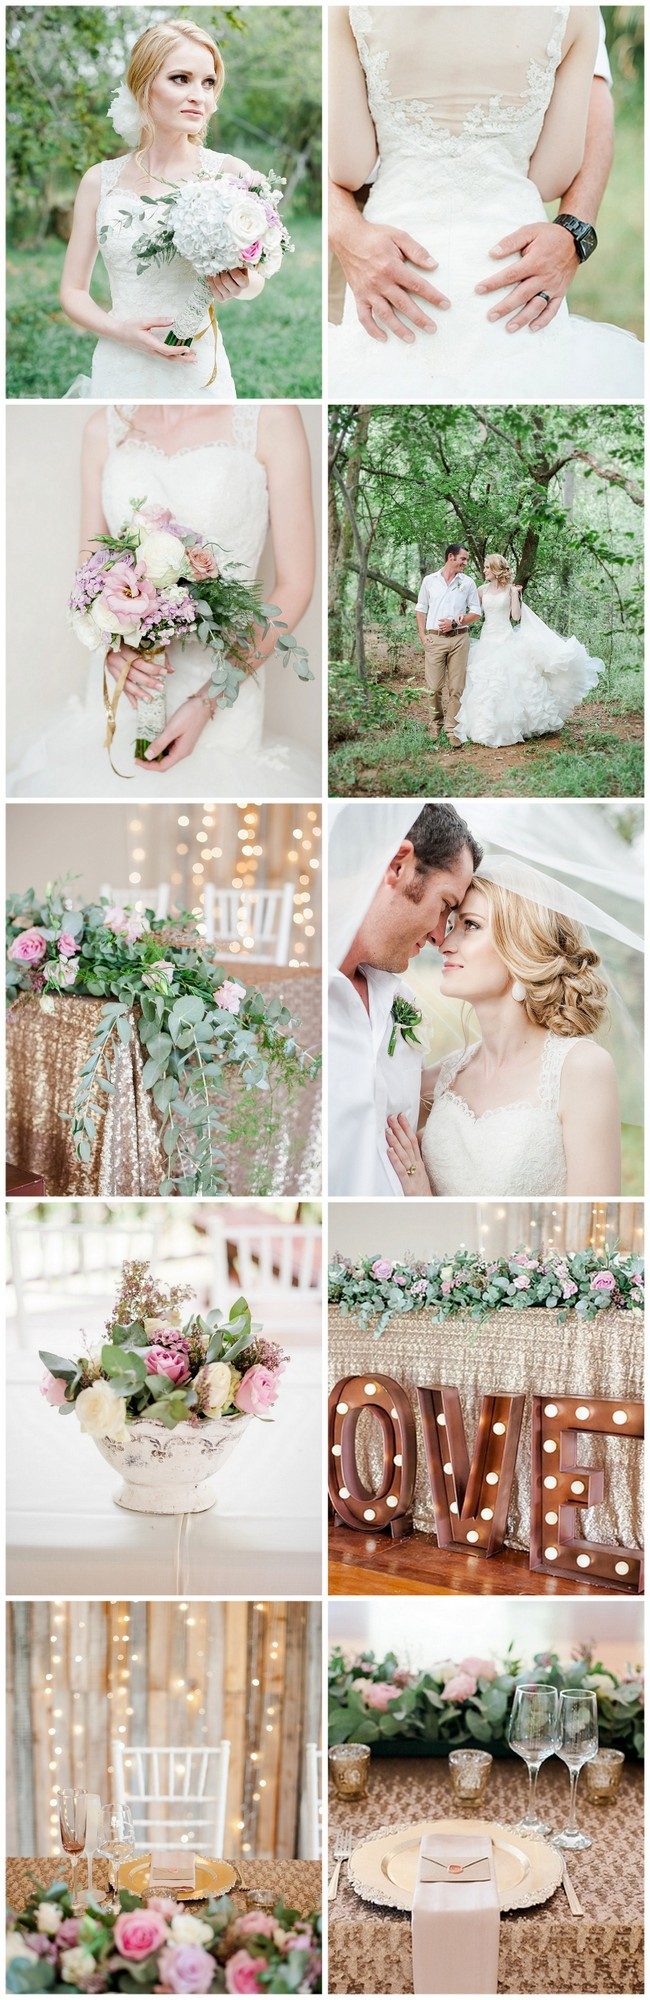 Totally Dreamy Pastel Gold Pretoria Wedding https://www.confettidaydreams.com/pastel-gold-pretoria-wedding/